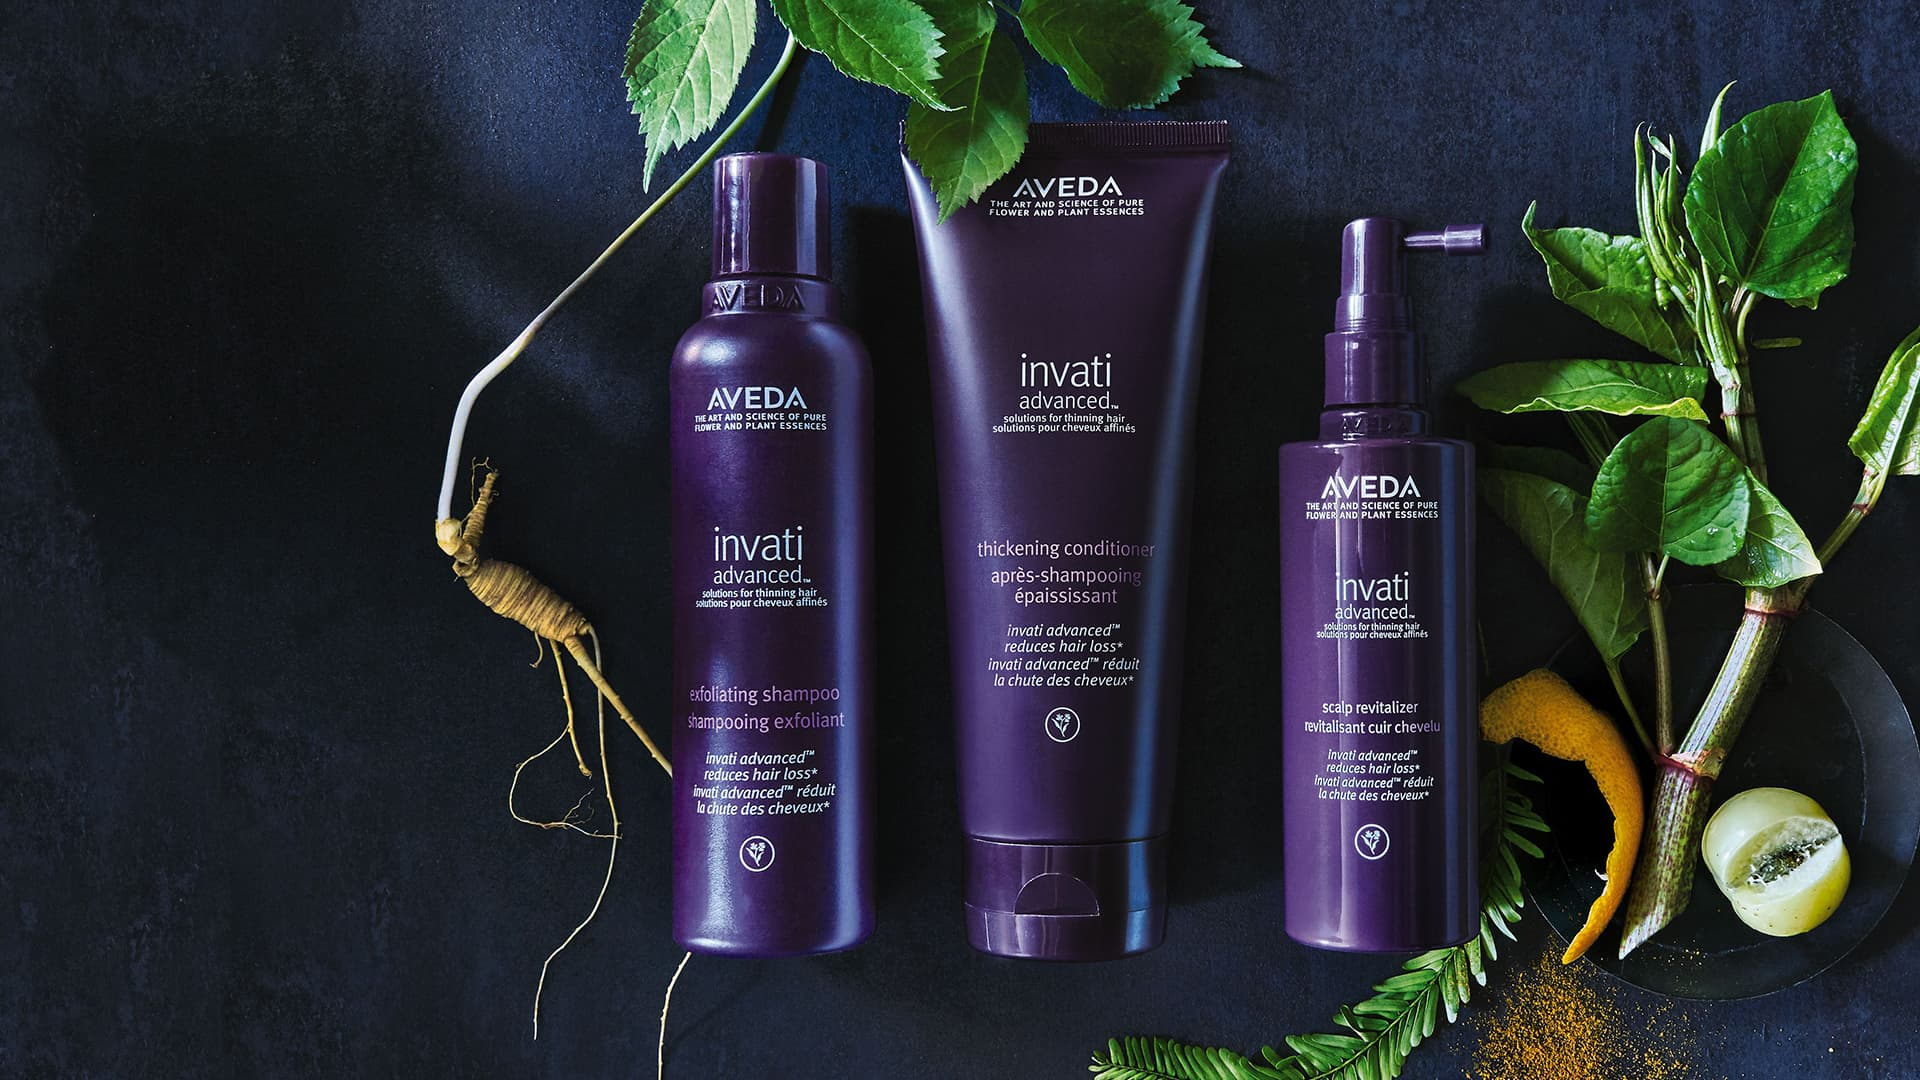 aveda-invati-advanced.jpg